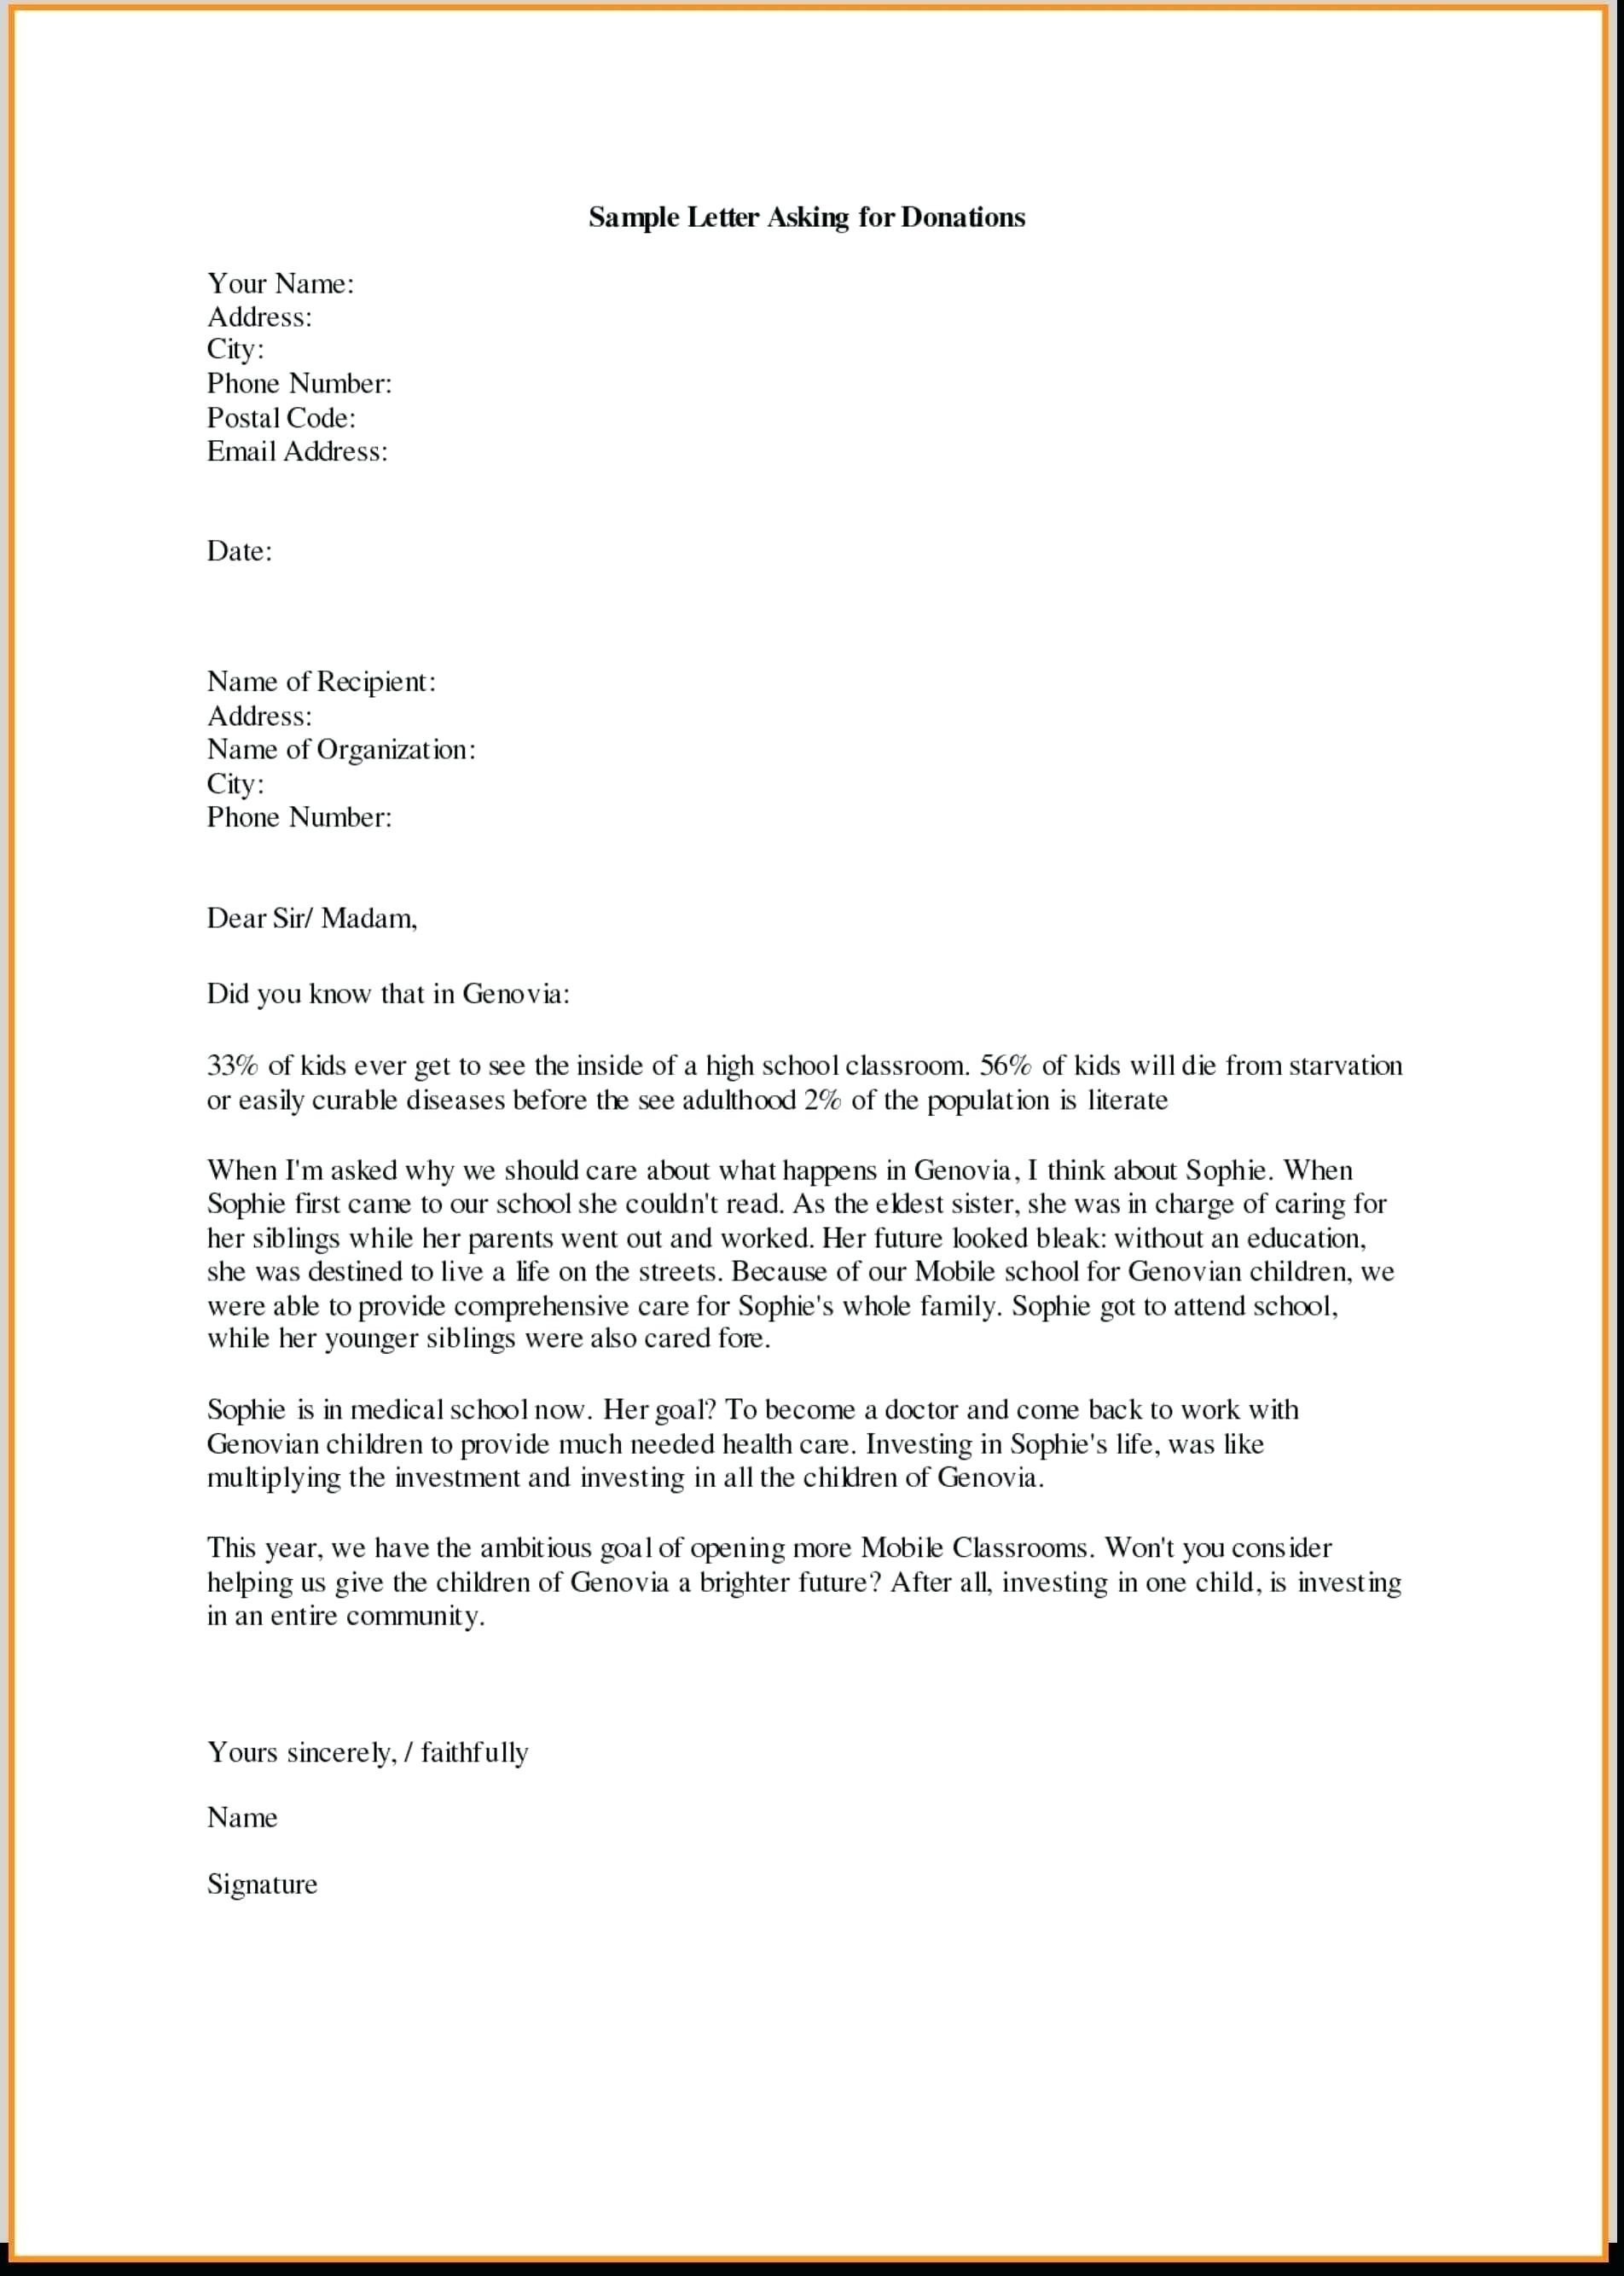 How to Write A Letter asking for Donations Template - Samples Letters Request Donation Best Samples Letters Request